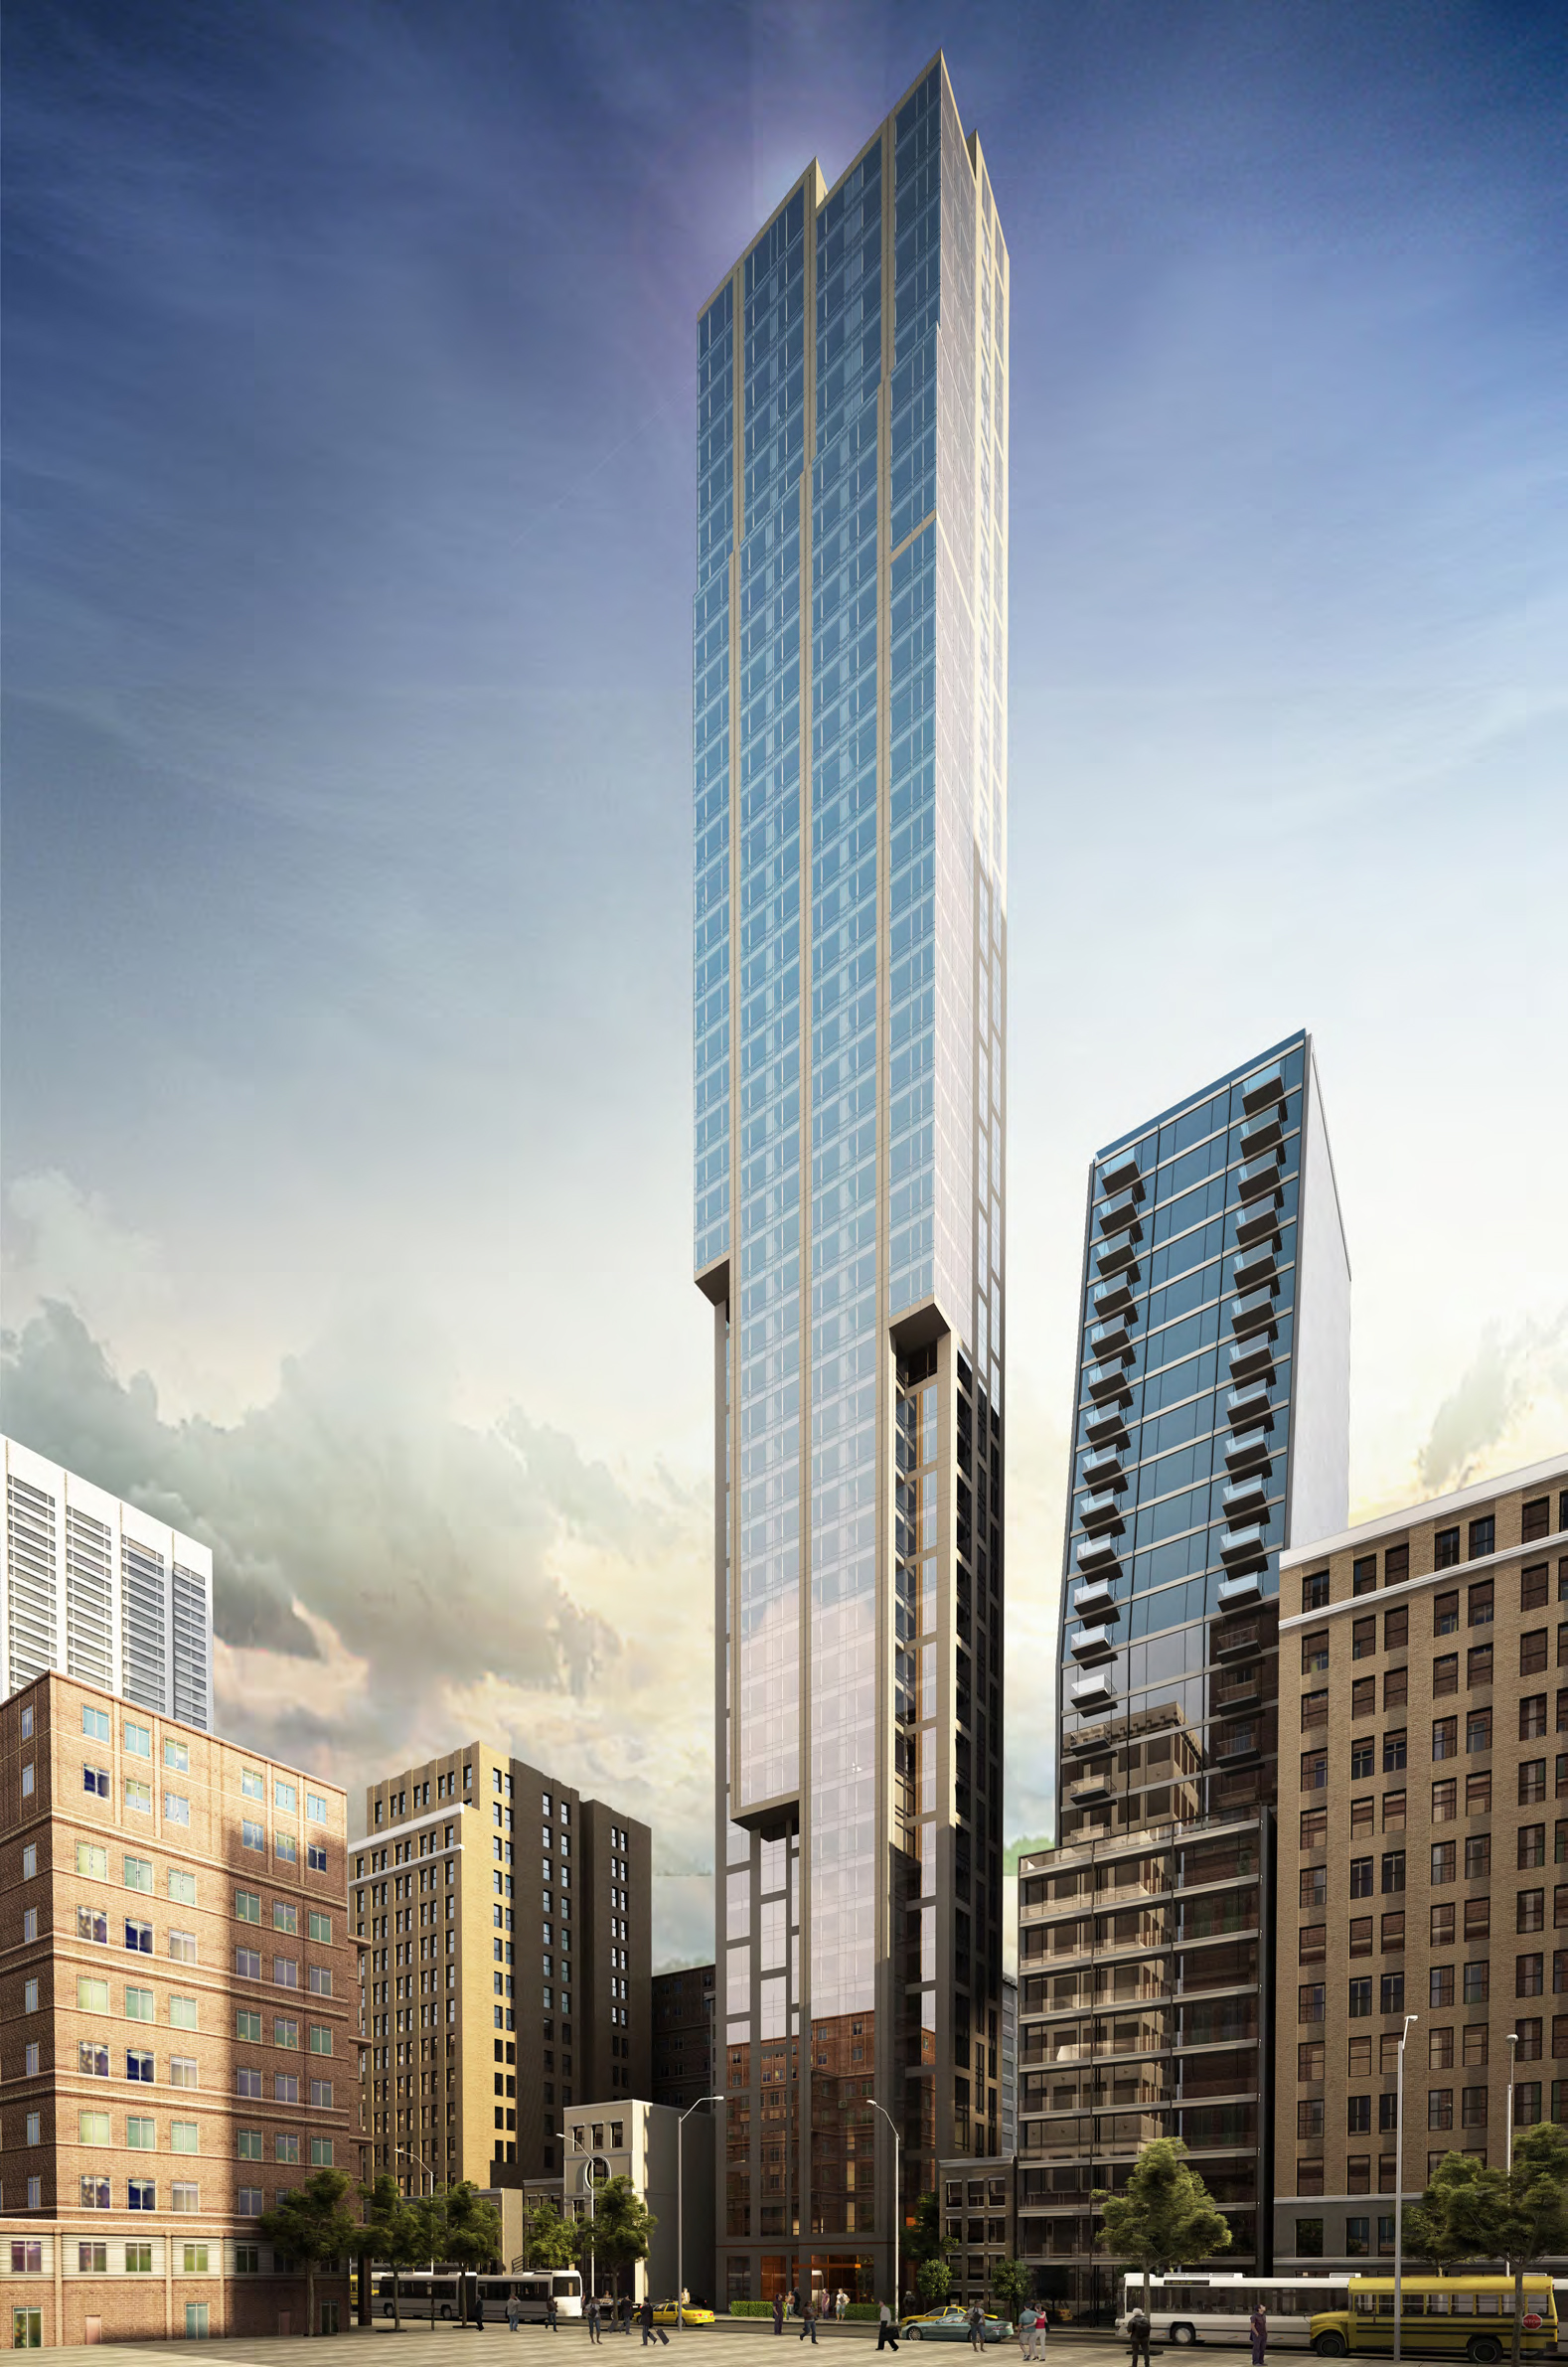 Rendering of 131 East 47th Street, southeast perspective. Credit: SLCE Architects